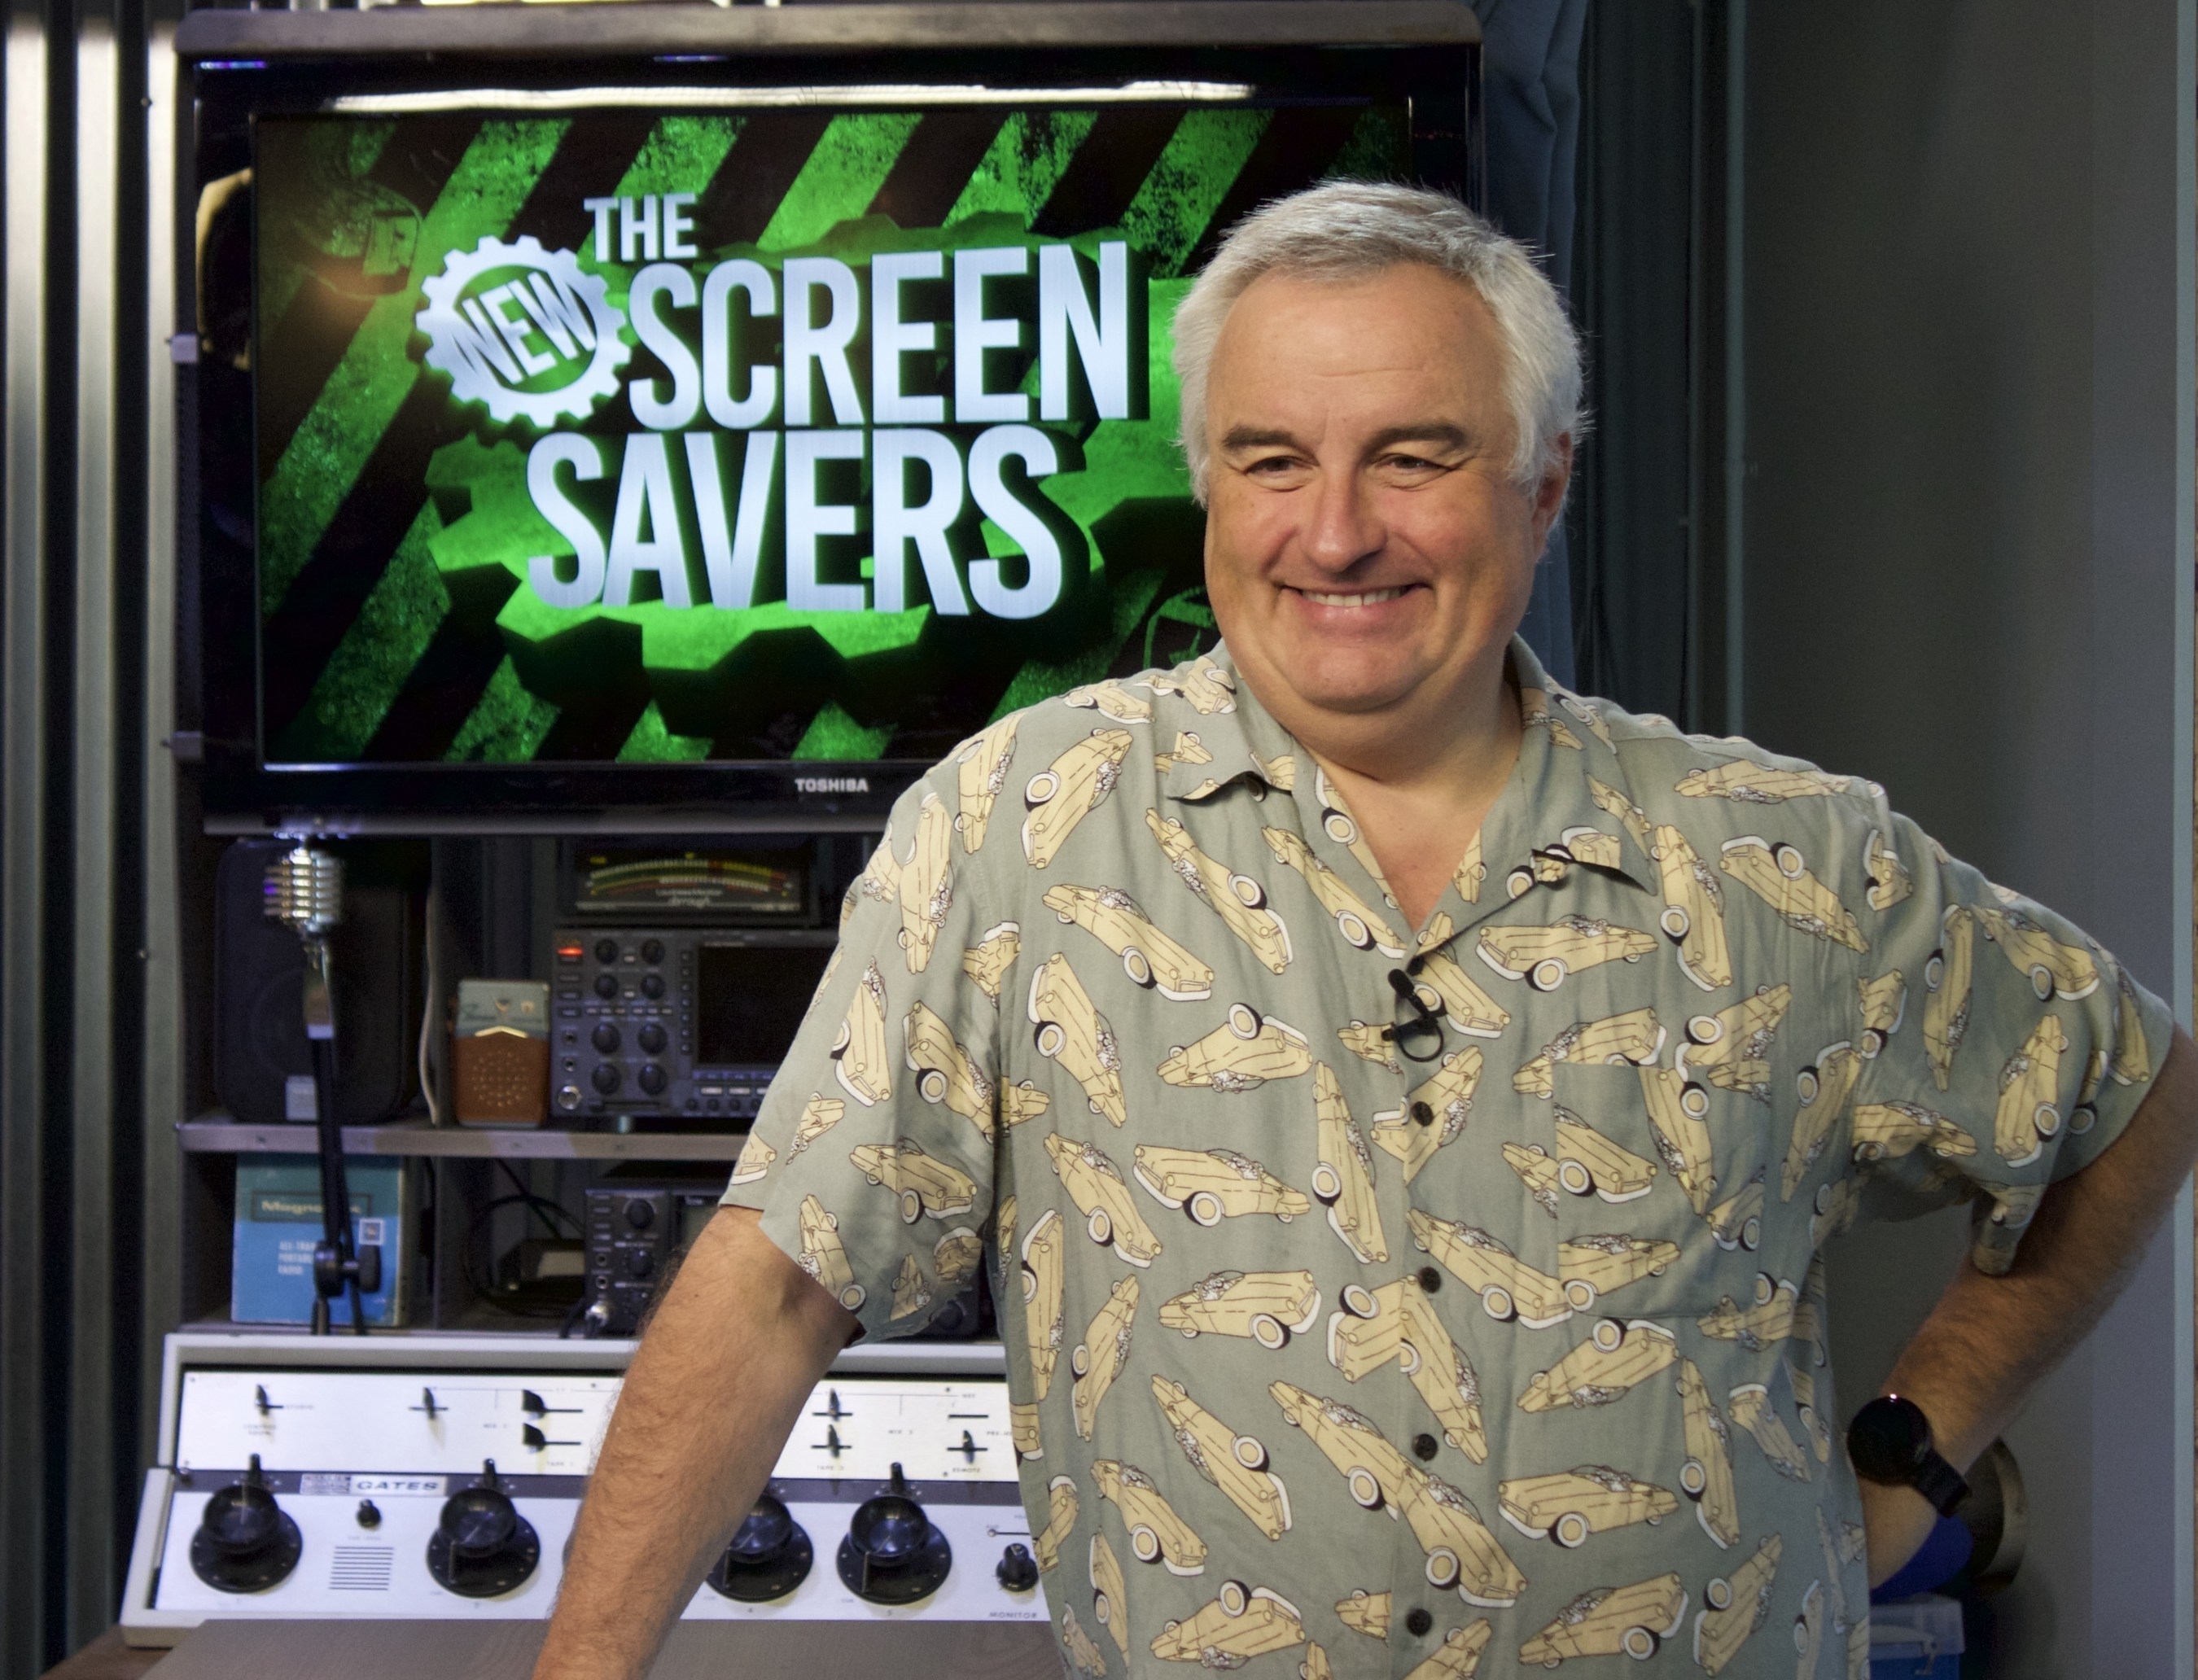 TWiT to Launch 'The New Screen Savers' on May 2, 2015